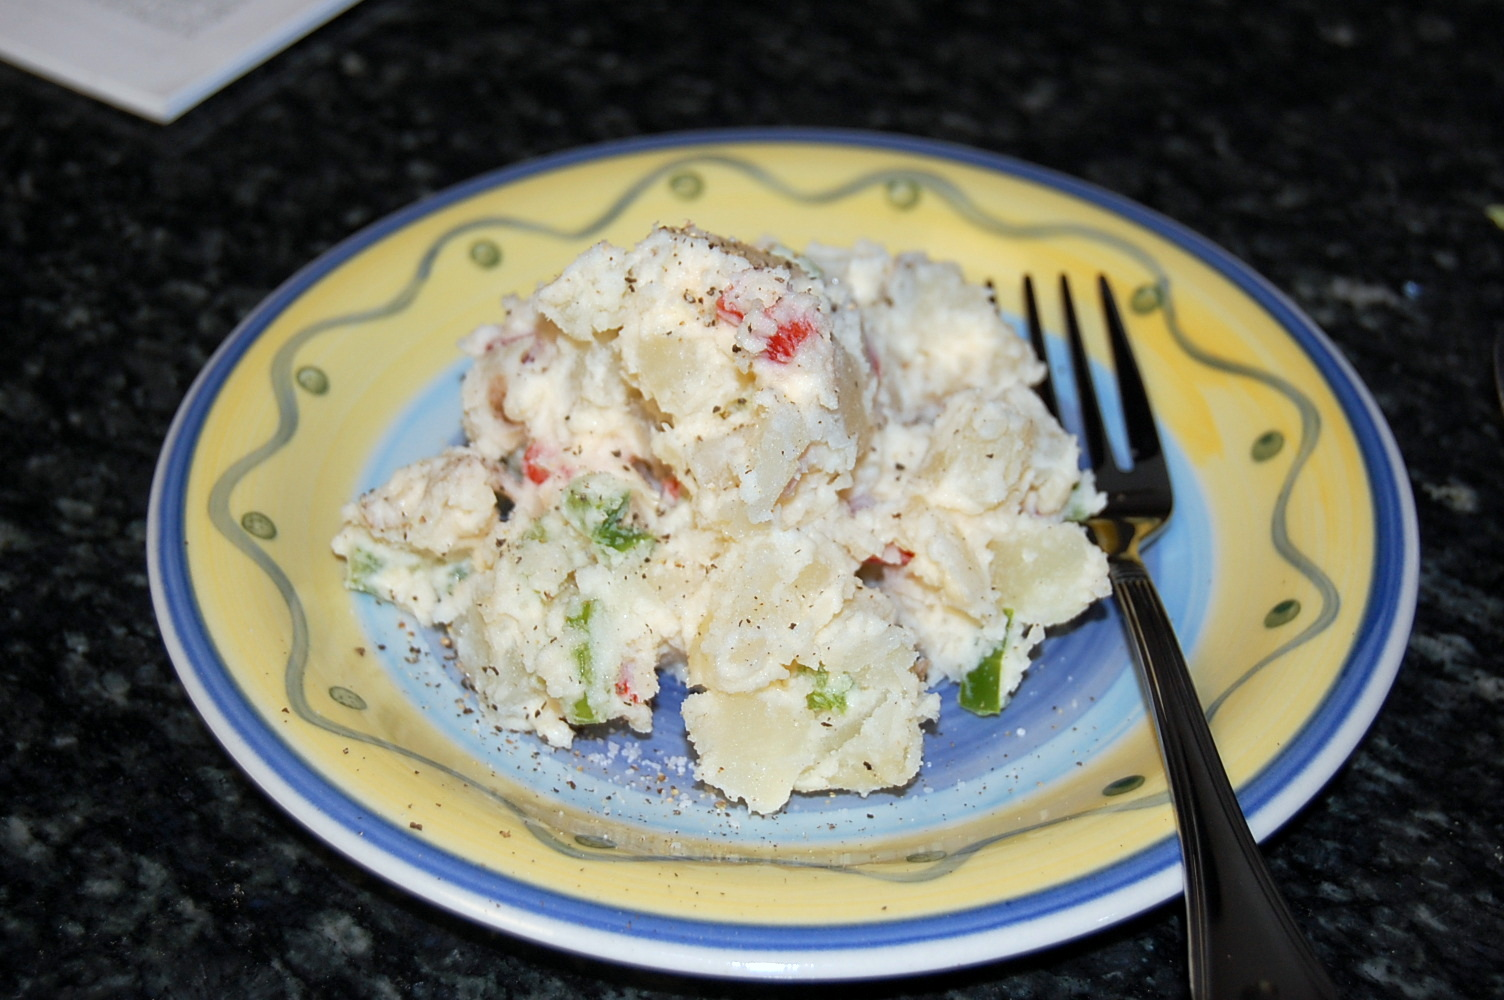 potato salad with fresh vegetables.jpg